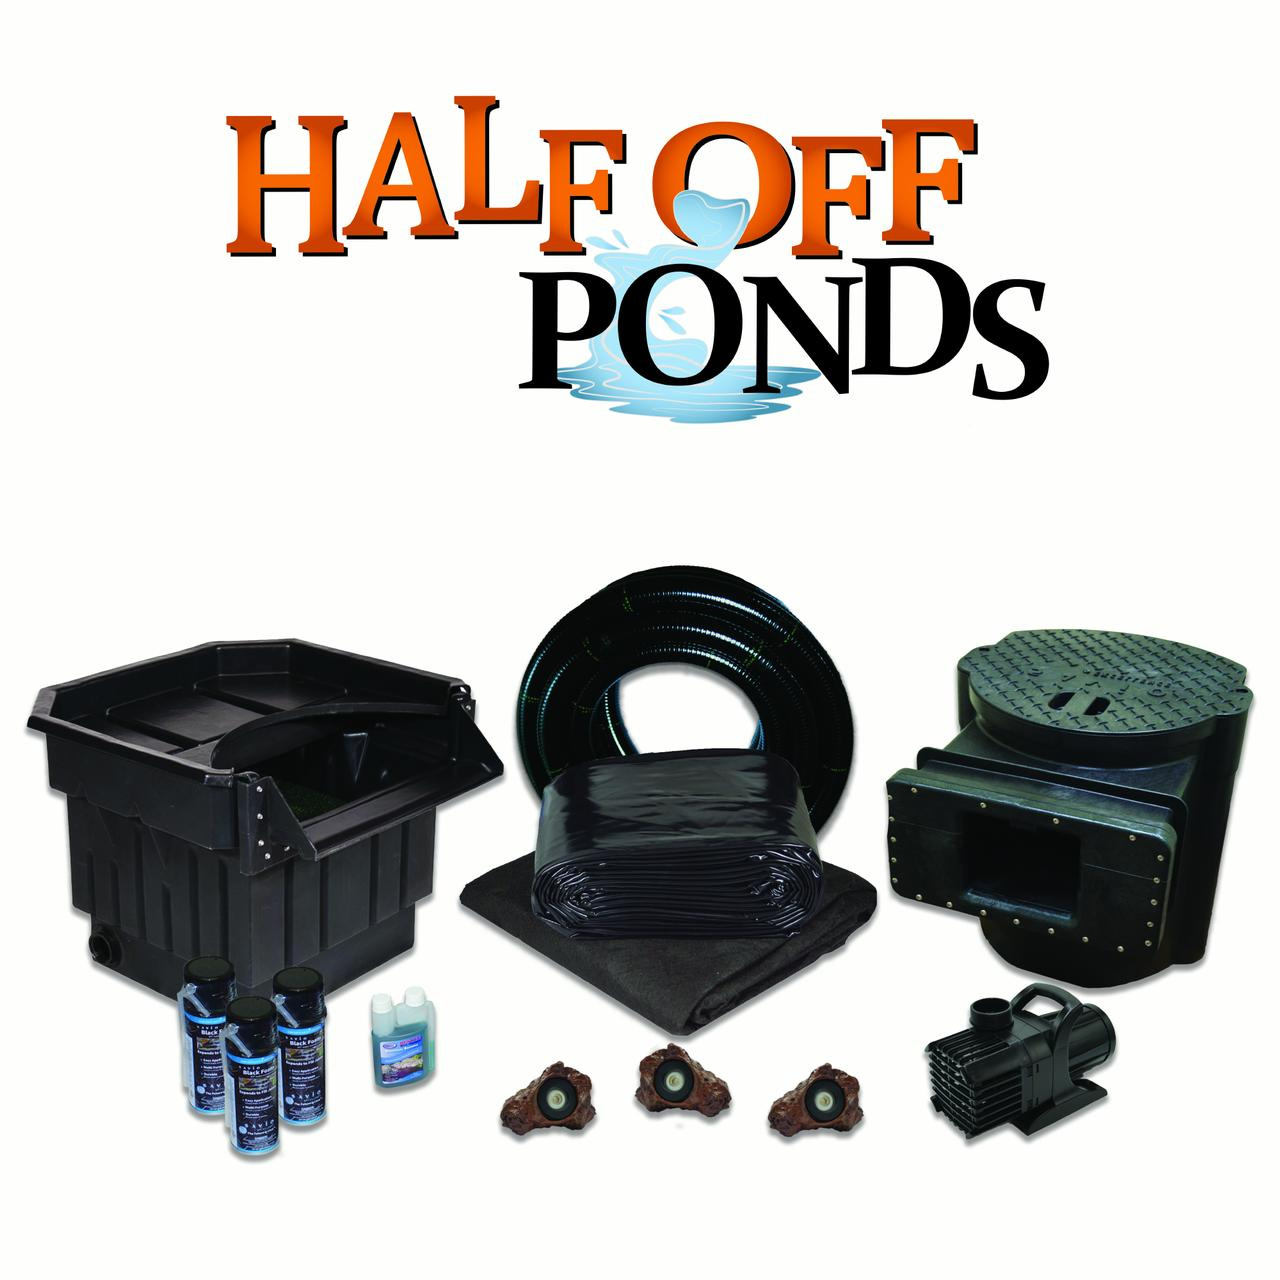 Half Off Ponds PVCXLH6 - 6100 Complete Water Garden and Koi Pond Kit, with  60cm Waterfall, 6 1m x 9 1m PVC Liner